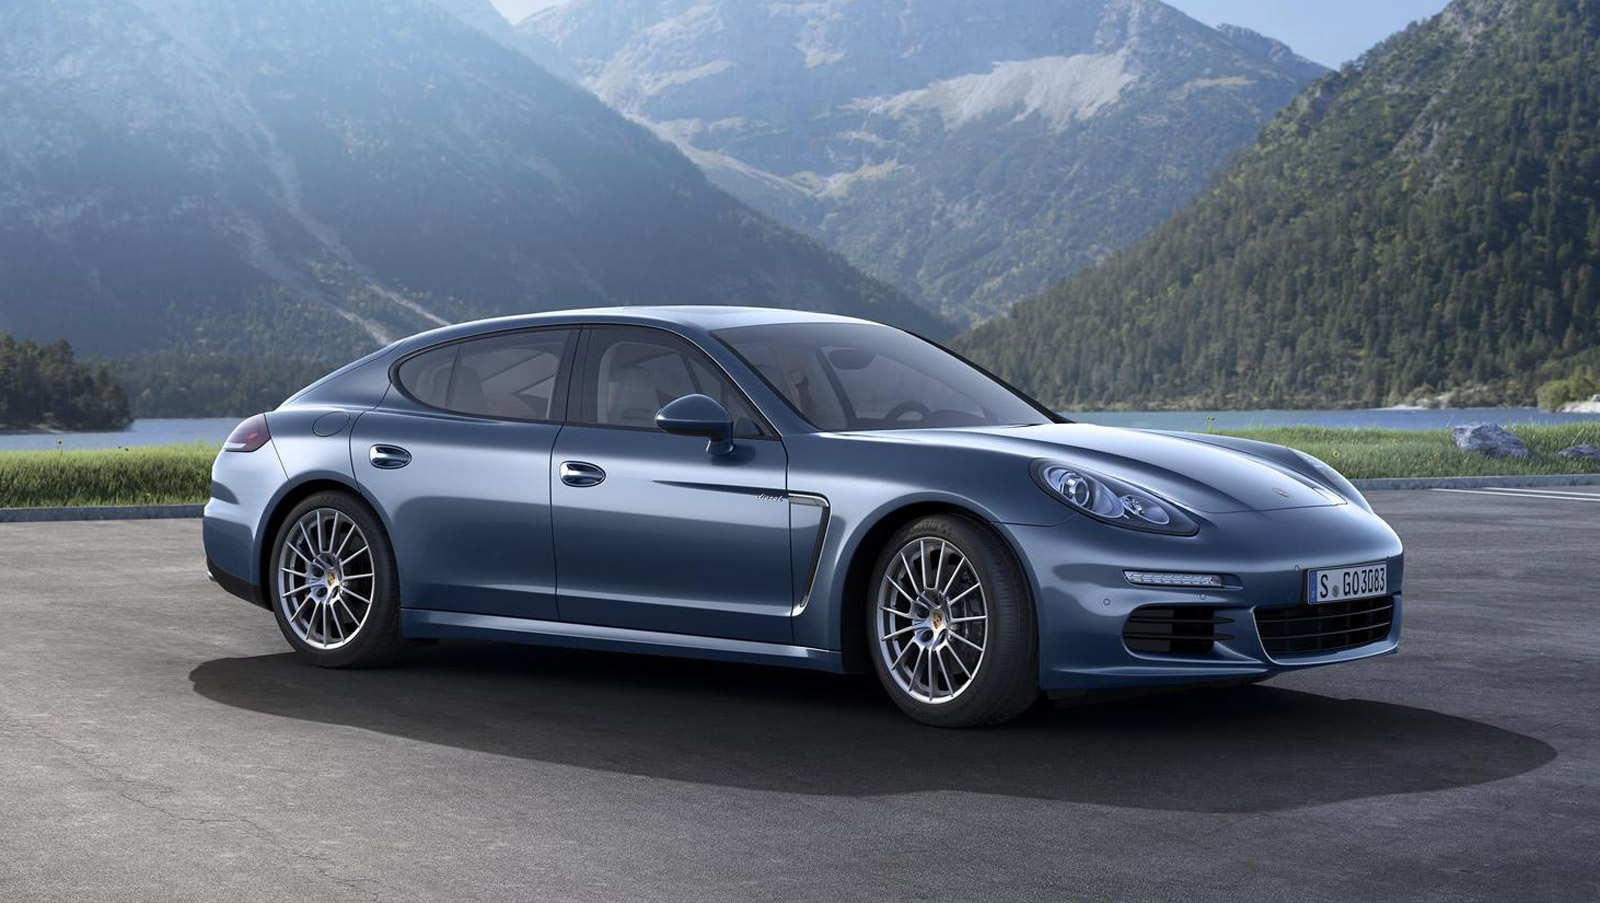 2014 Porsche Panamera Review Ratings Specs Prices And